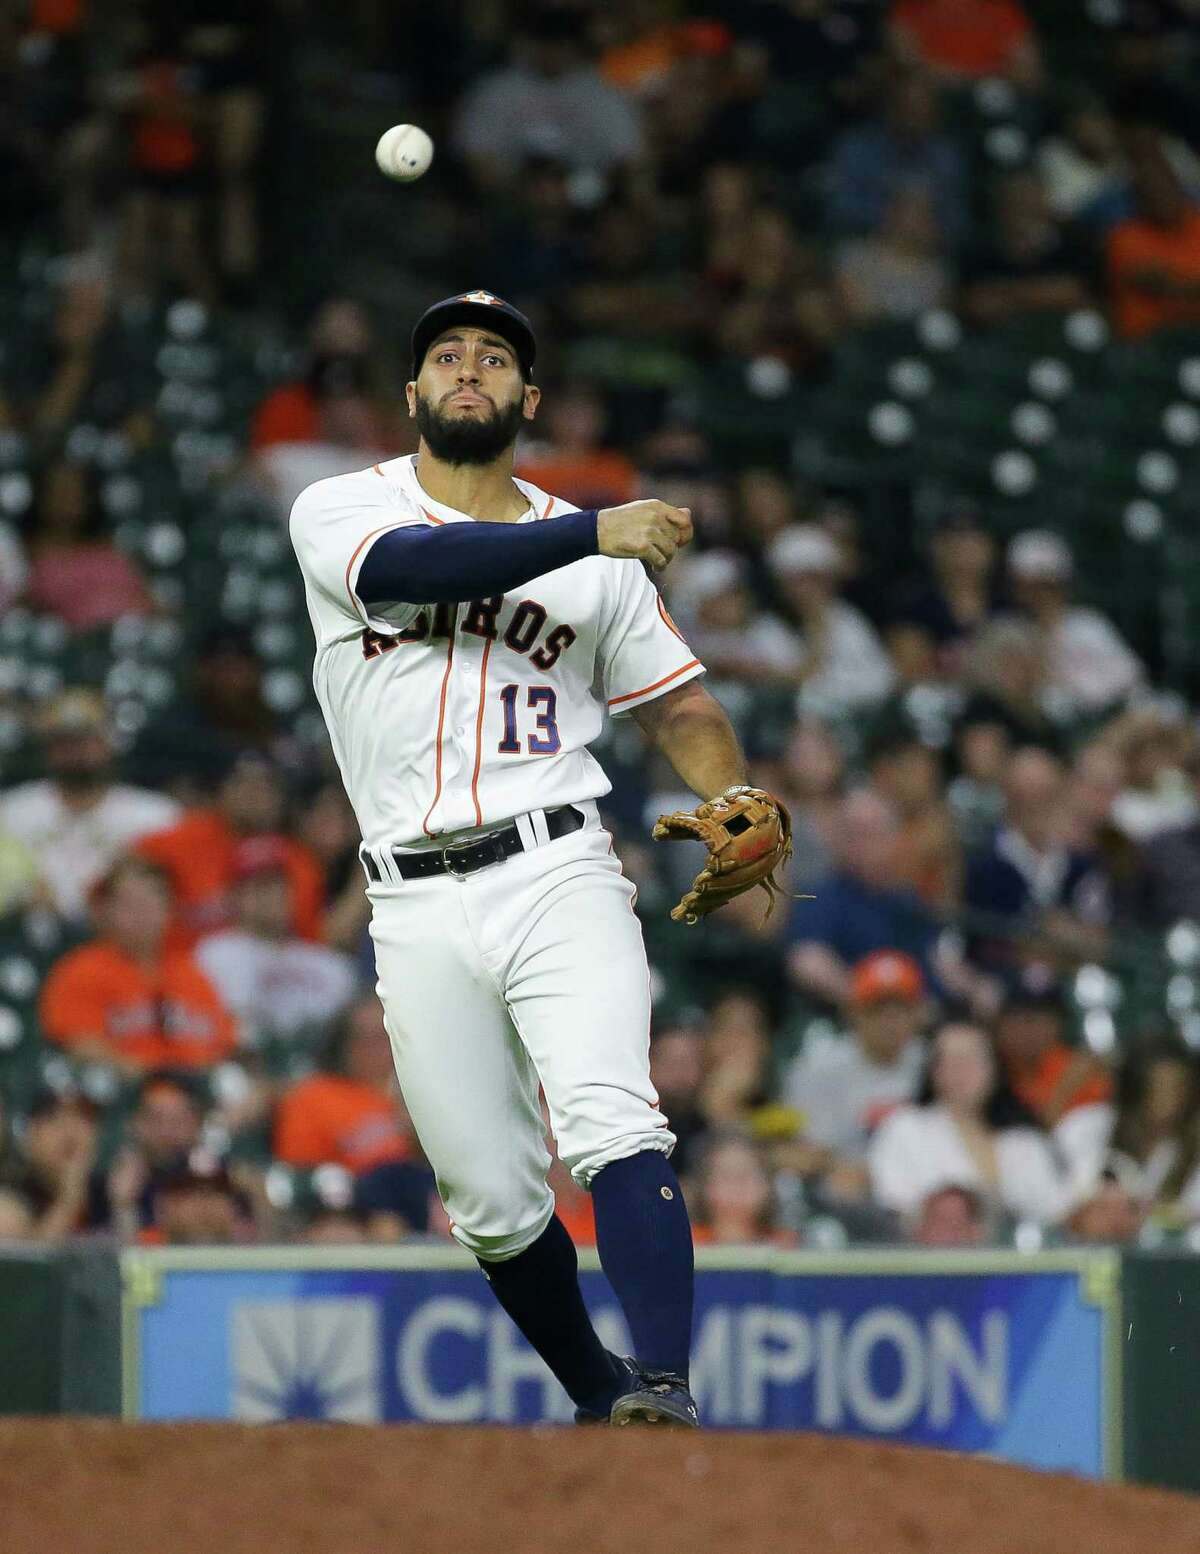 Houston Astros third baseman Abraham Toro (13) throws to first base for an out against Cleveland during the eighth inning of an MLB game at Minute Maid Park on Tuesday, July 20, 2021, in Houston.